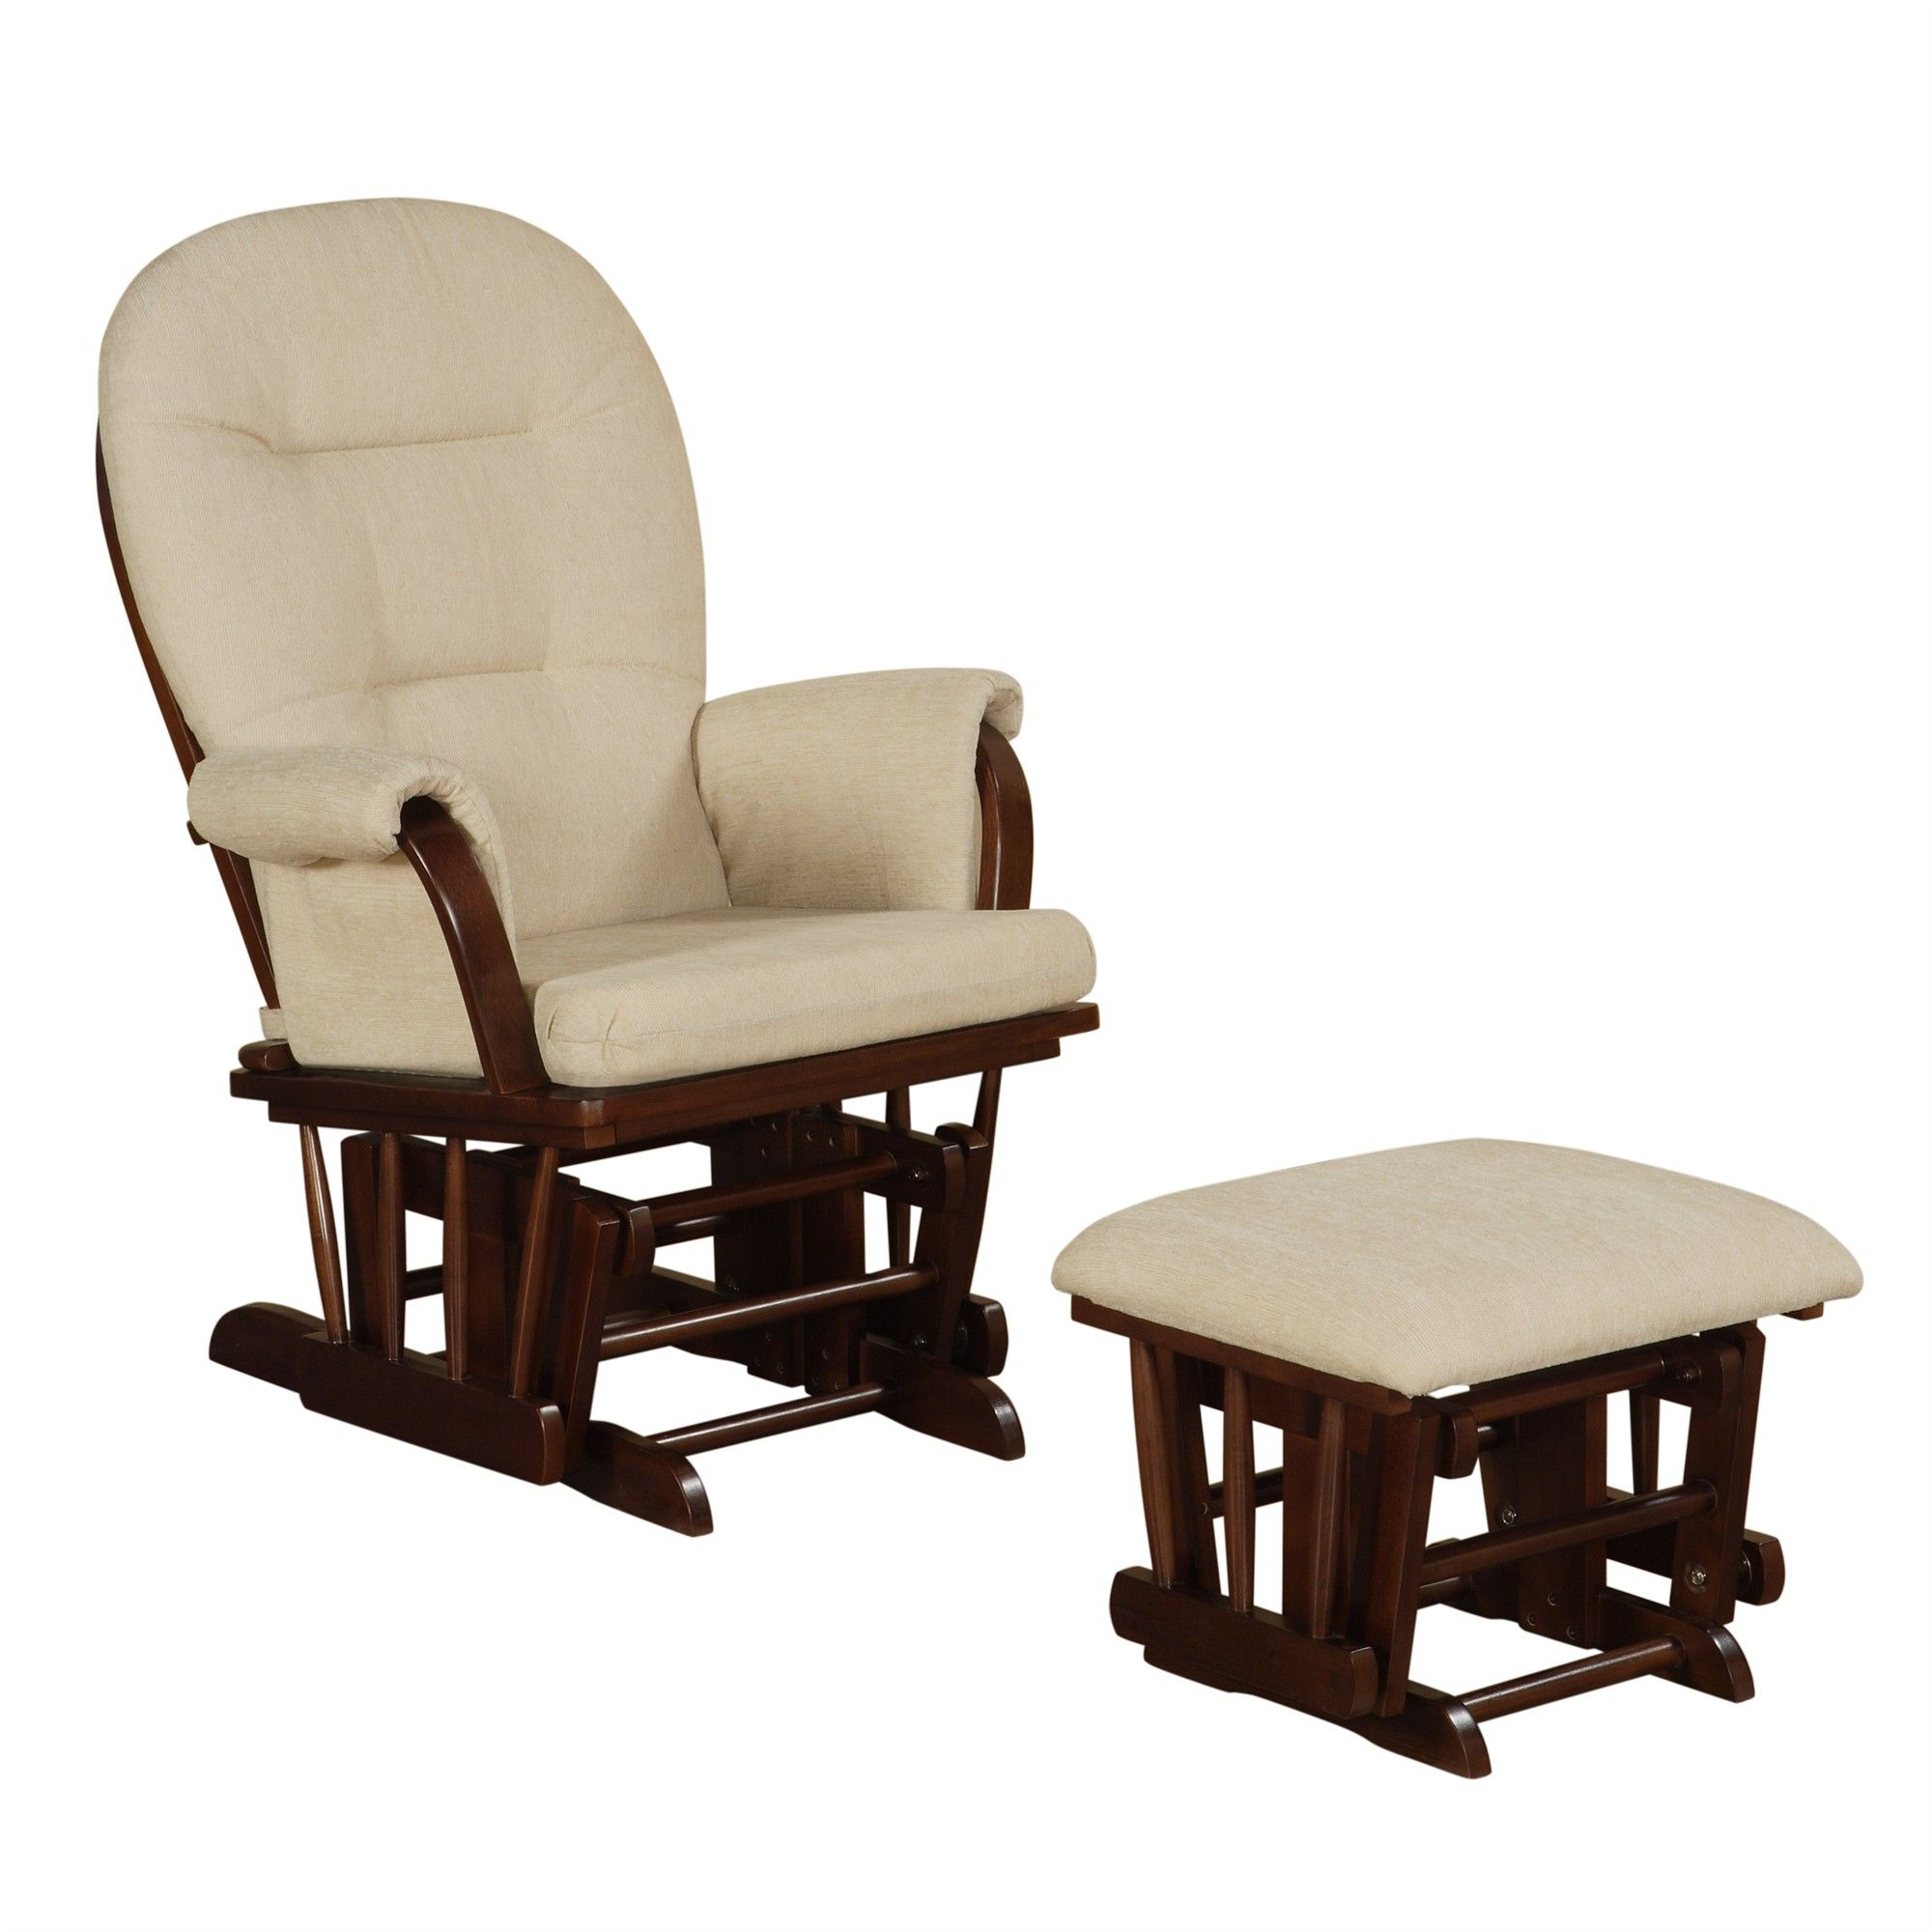 Cool Nursery Rocking Chair With Ottoman Chairs Rocking Chair Gmtry Best Dining Table And Chair Ideas Images Gmtryco